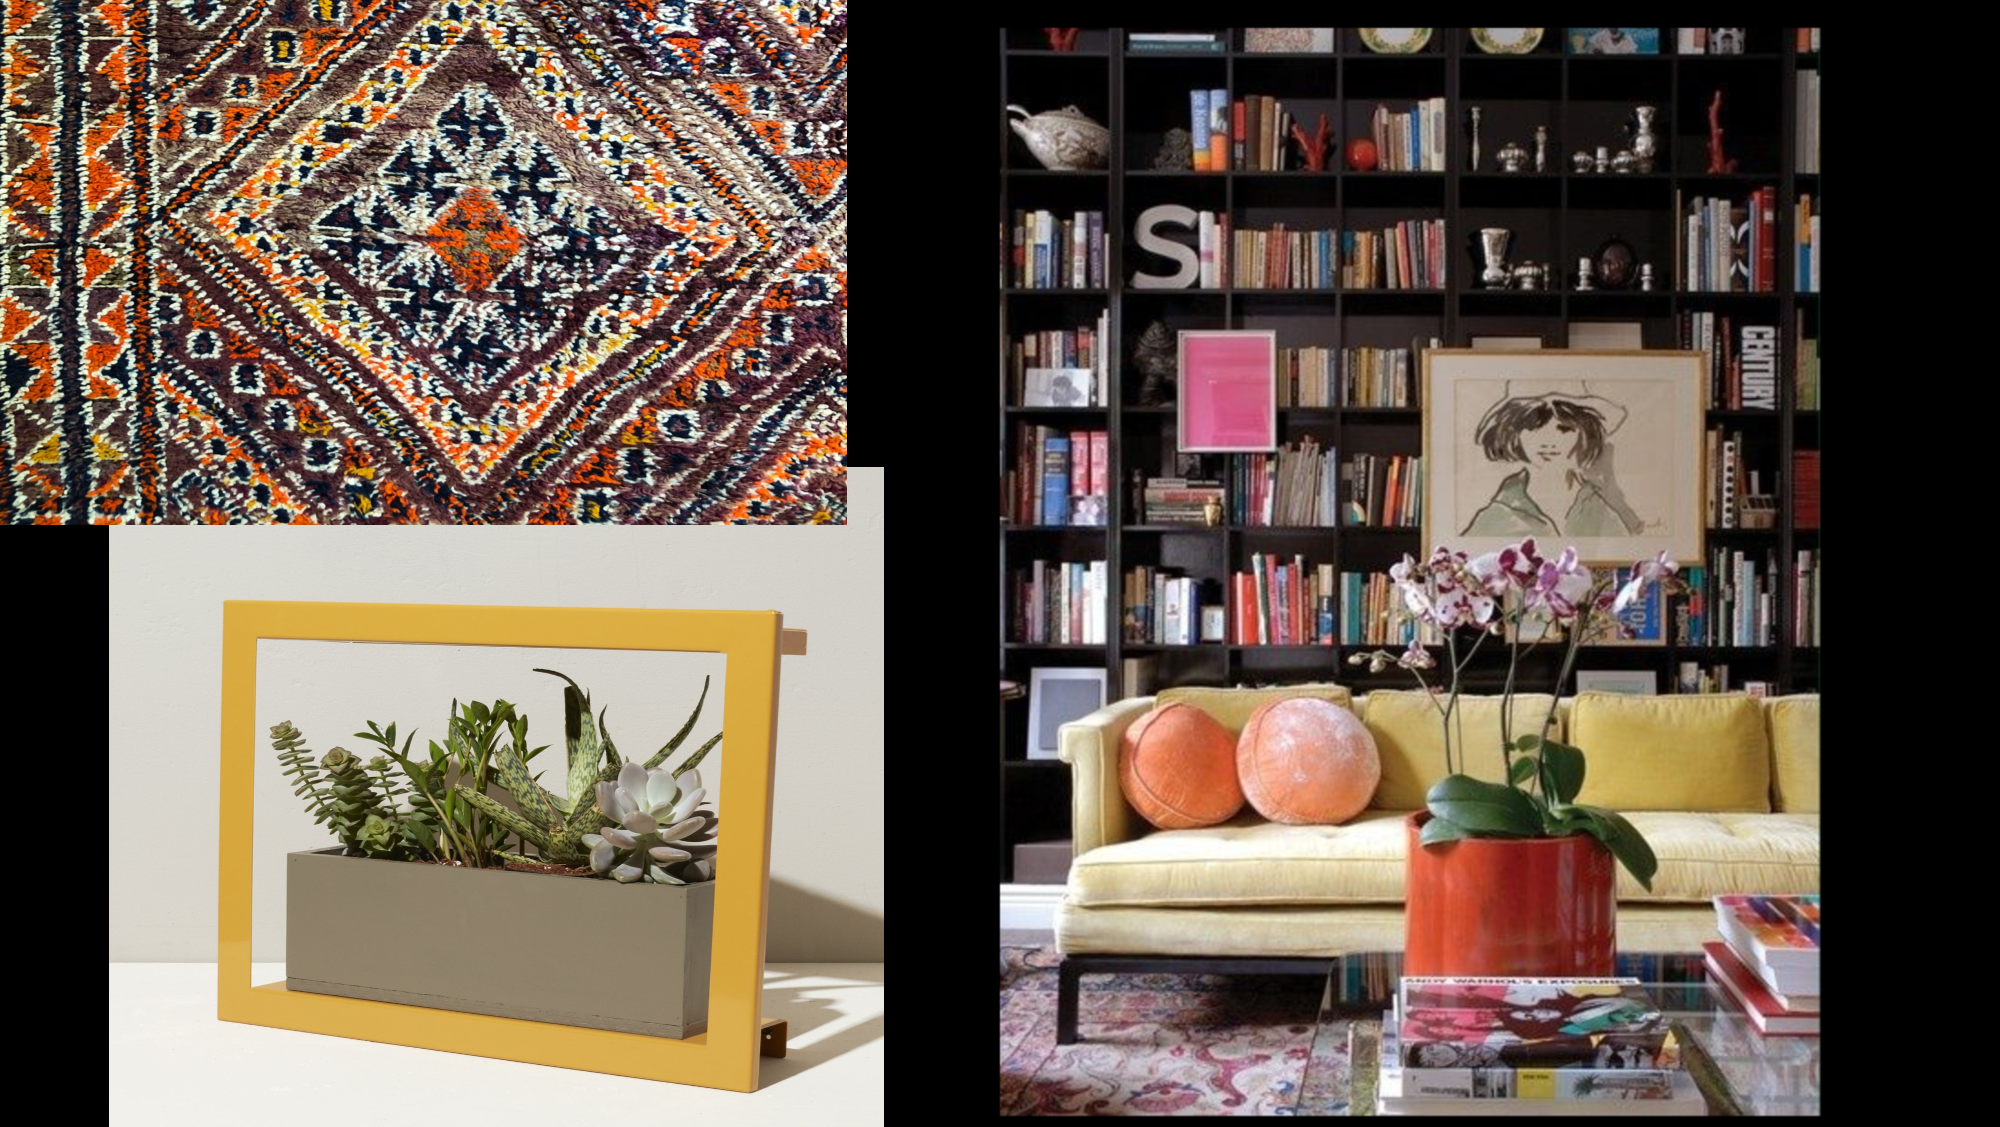 KATE PEARCE VINTAGE TACKLES A MOODY LIBRARY FOR THE FALL 2019 ONE ROOM CHALLENGE